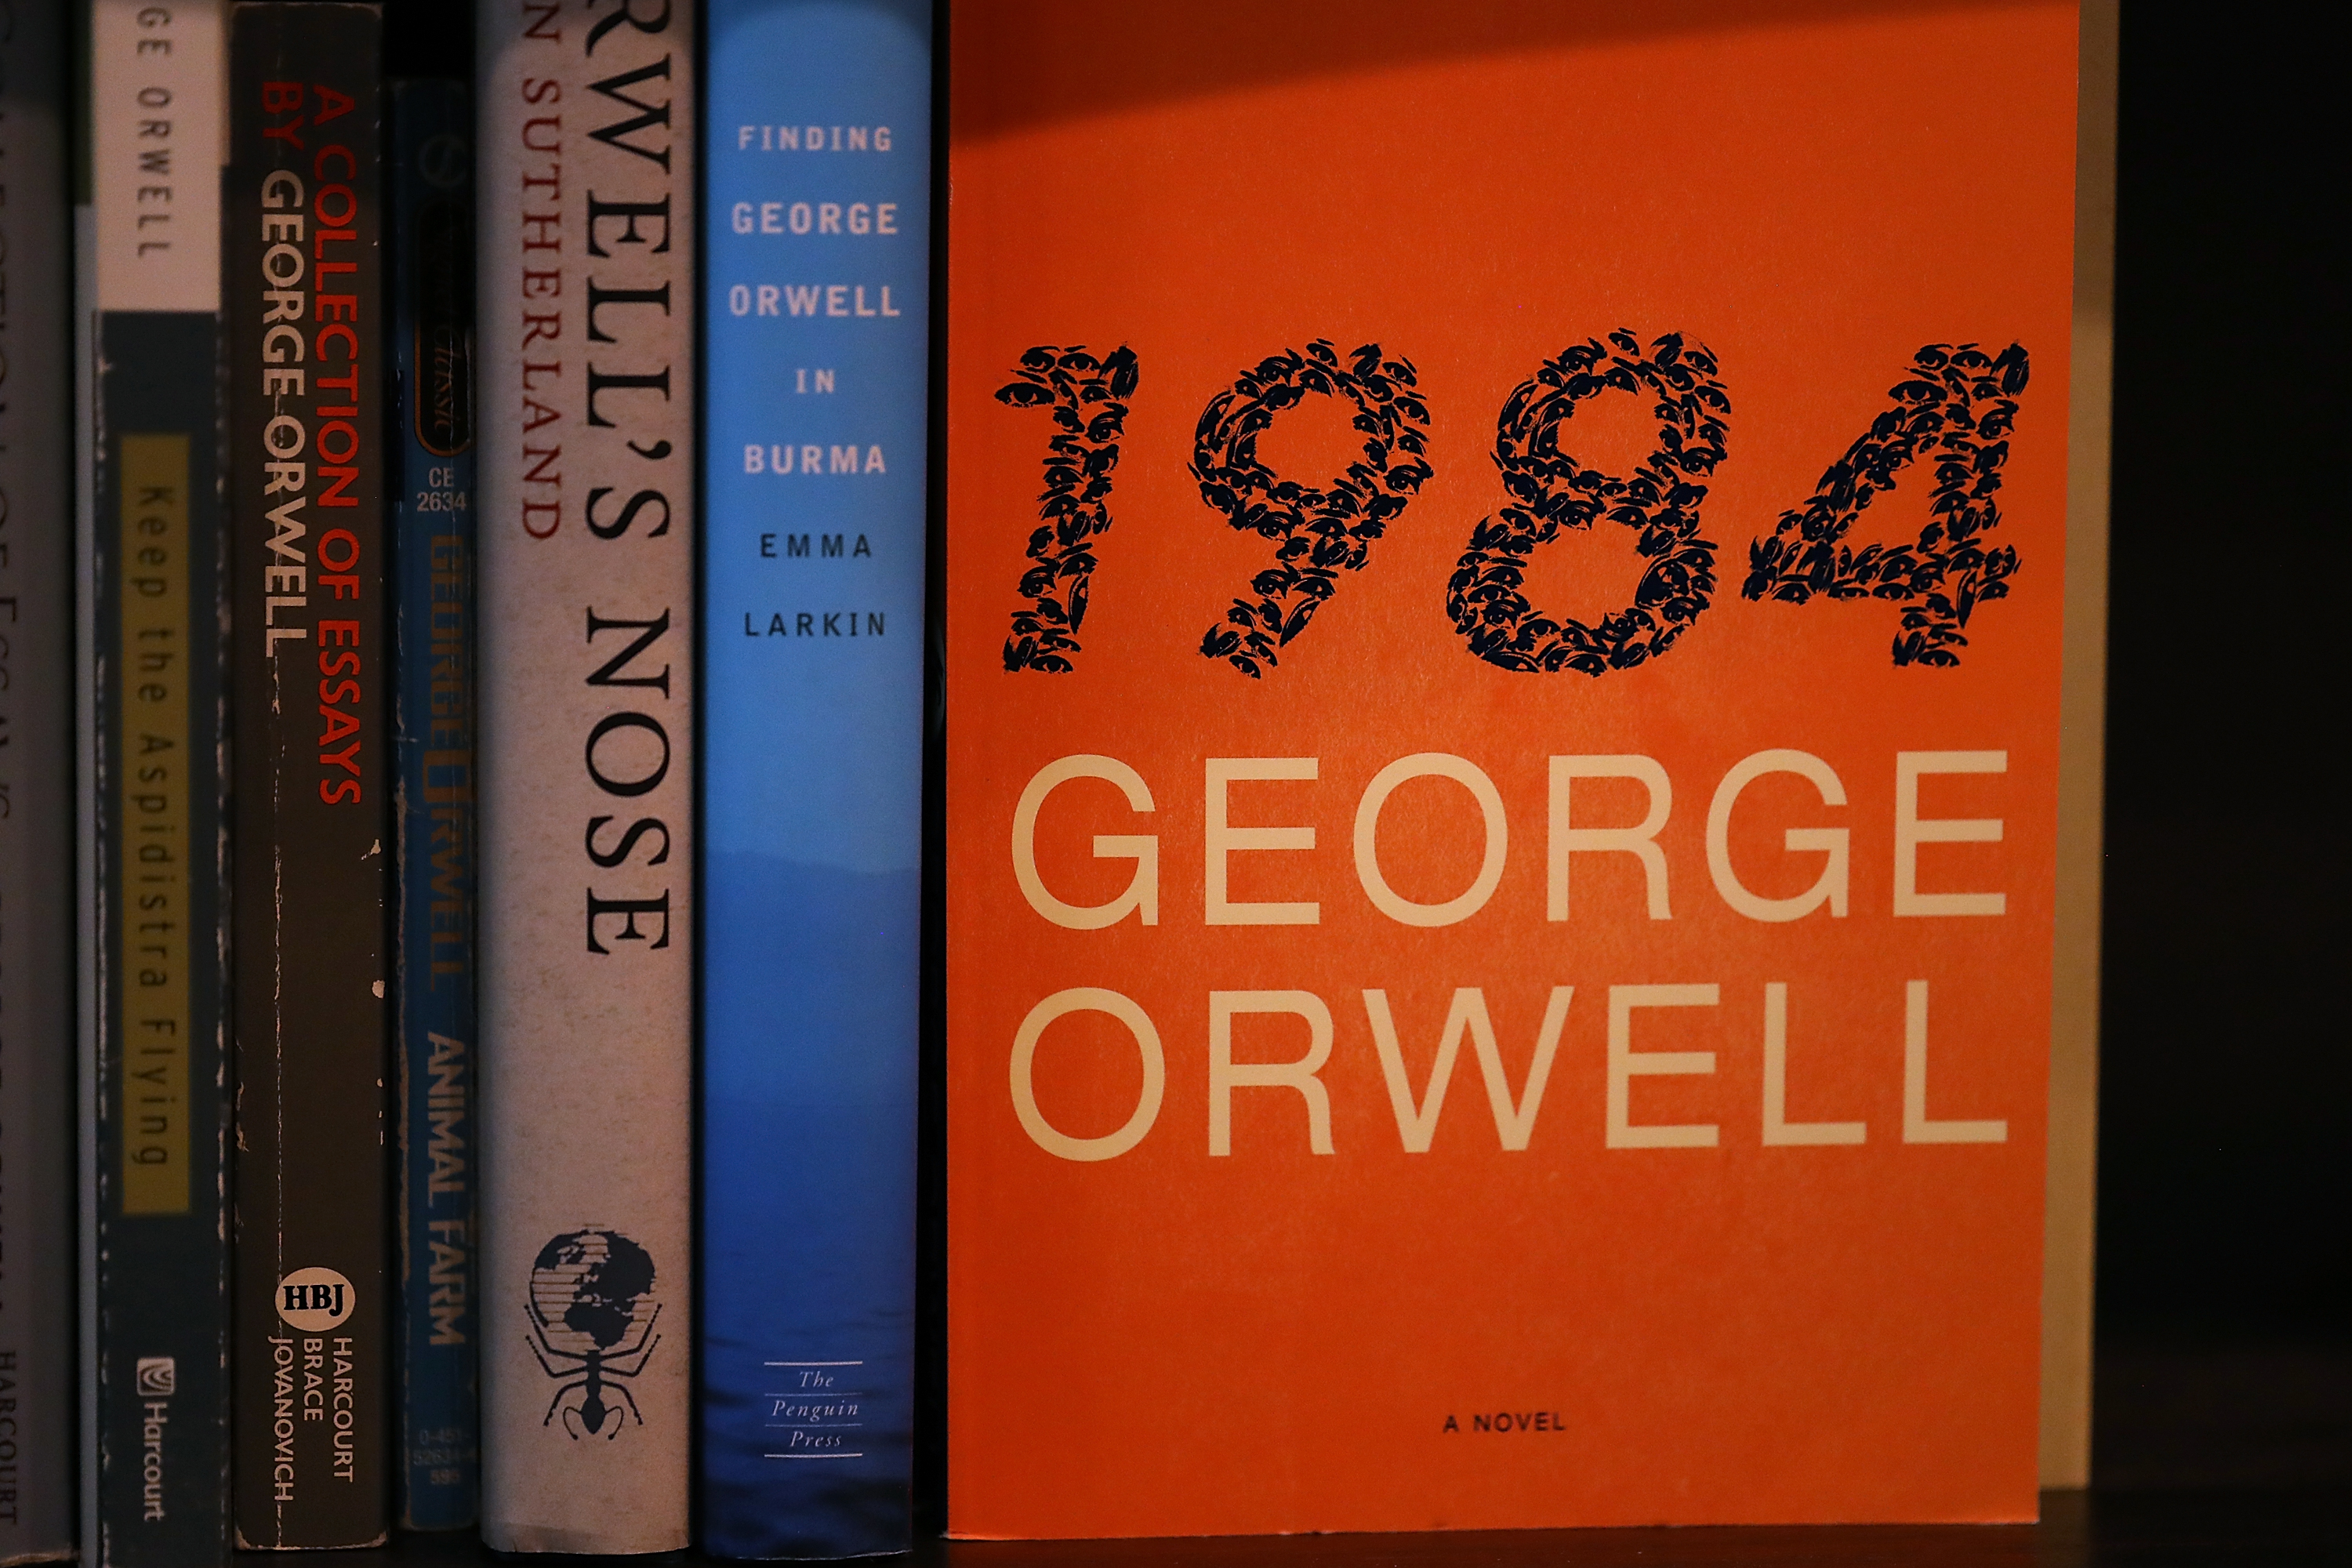 george orwell 1984 interest in dystopian novel surges in wake george orwell 1984 interest in dystopian novel surges in wake of trump administration s newspeak